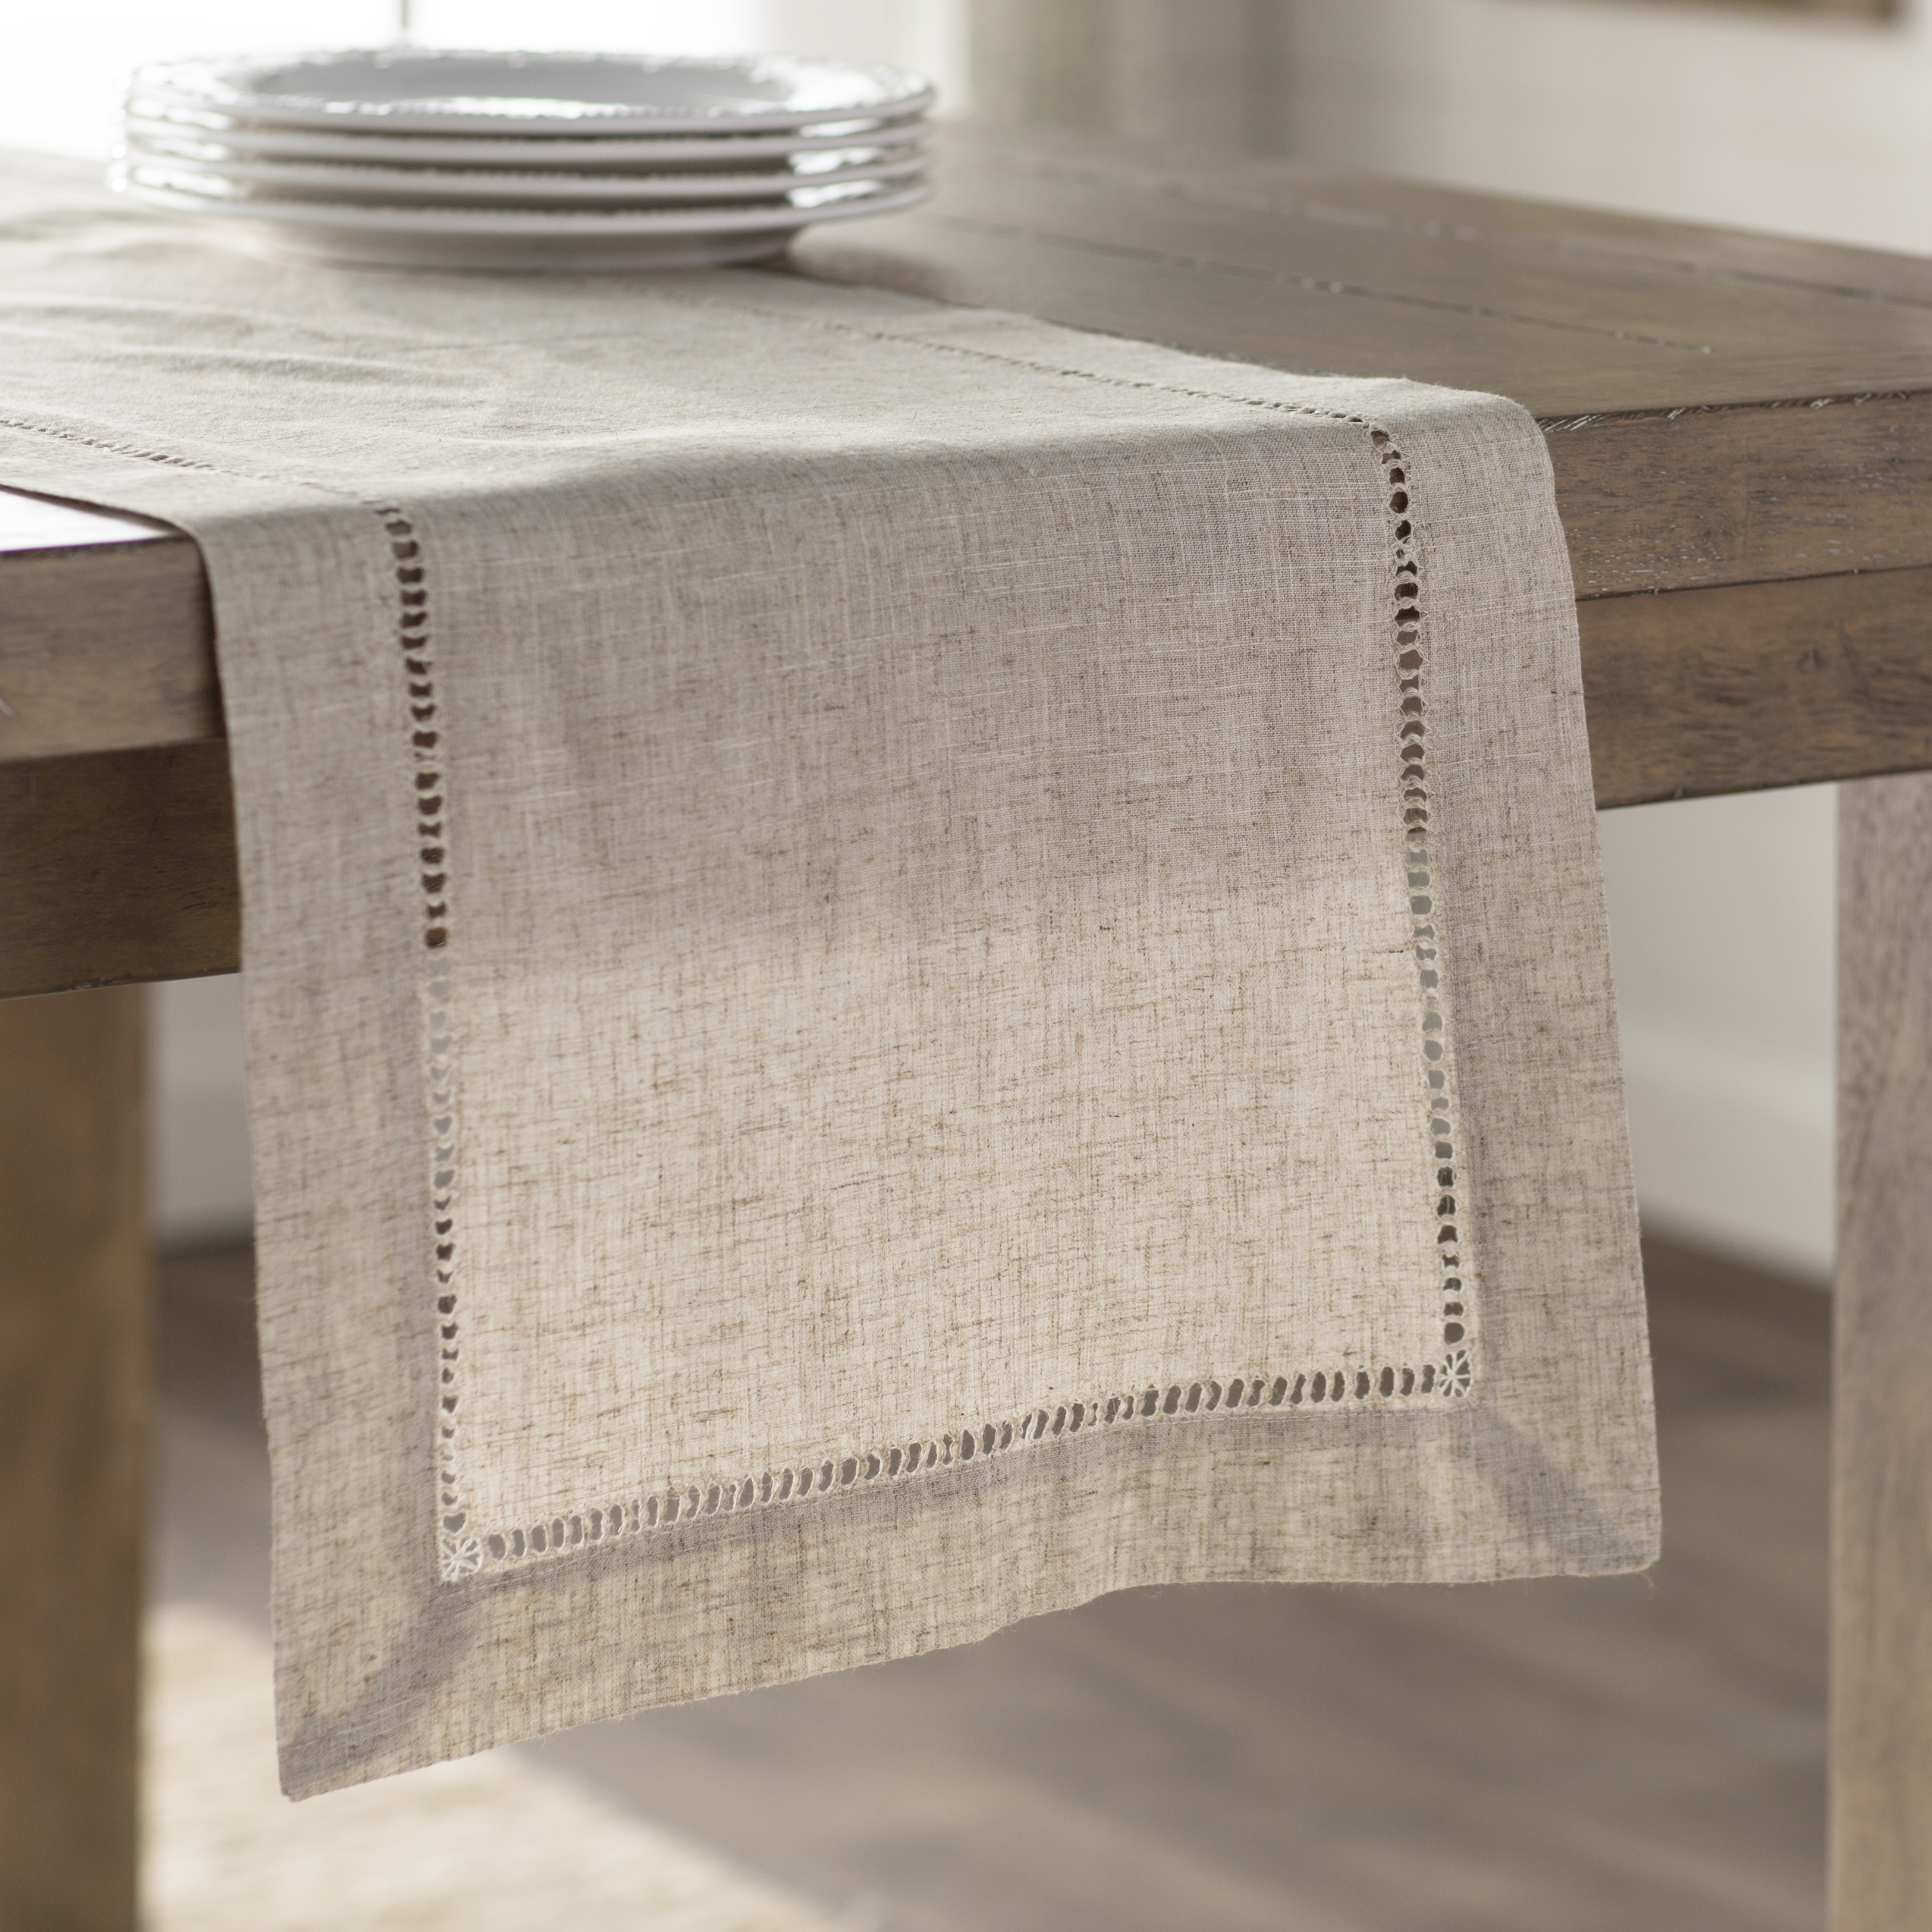 tablecloths table linens joss main default name tablecloth for inch round accent runners small chest drawers tall nightstands chair cushions solid wood coffee best furniture